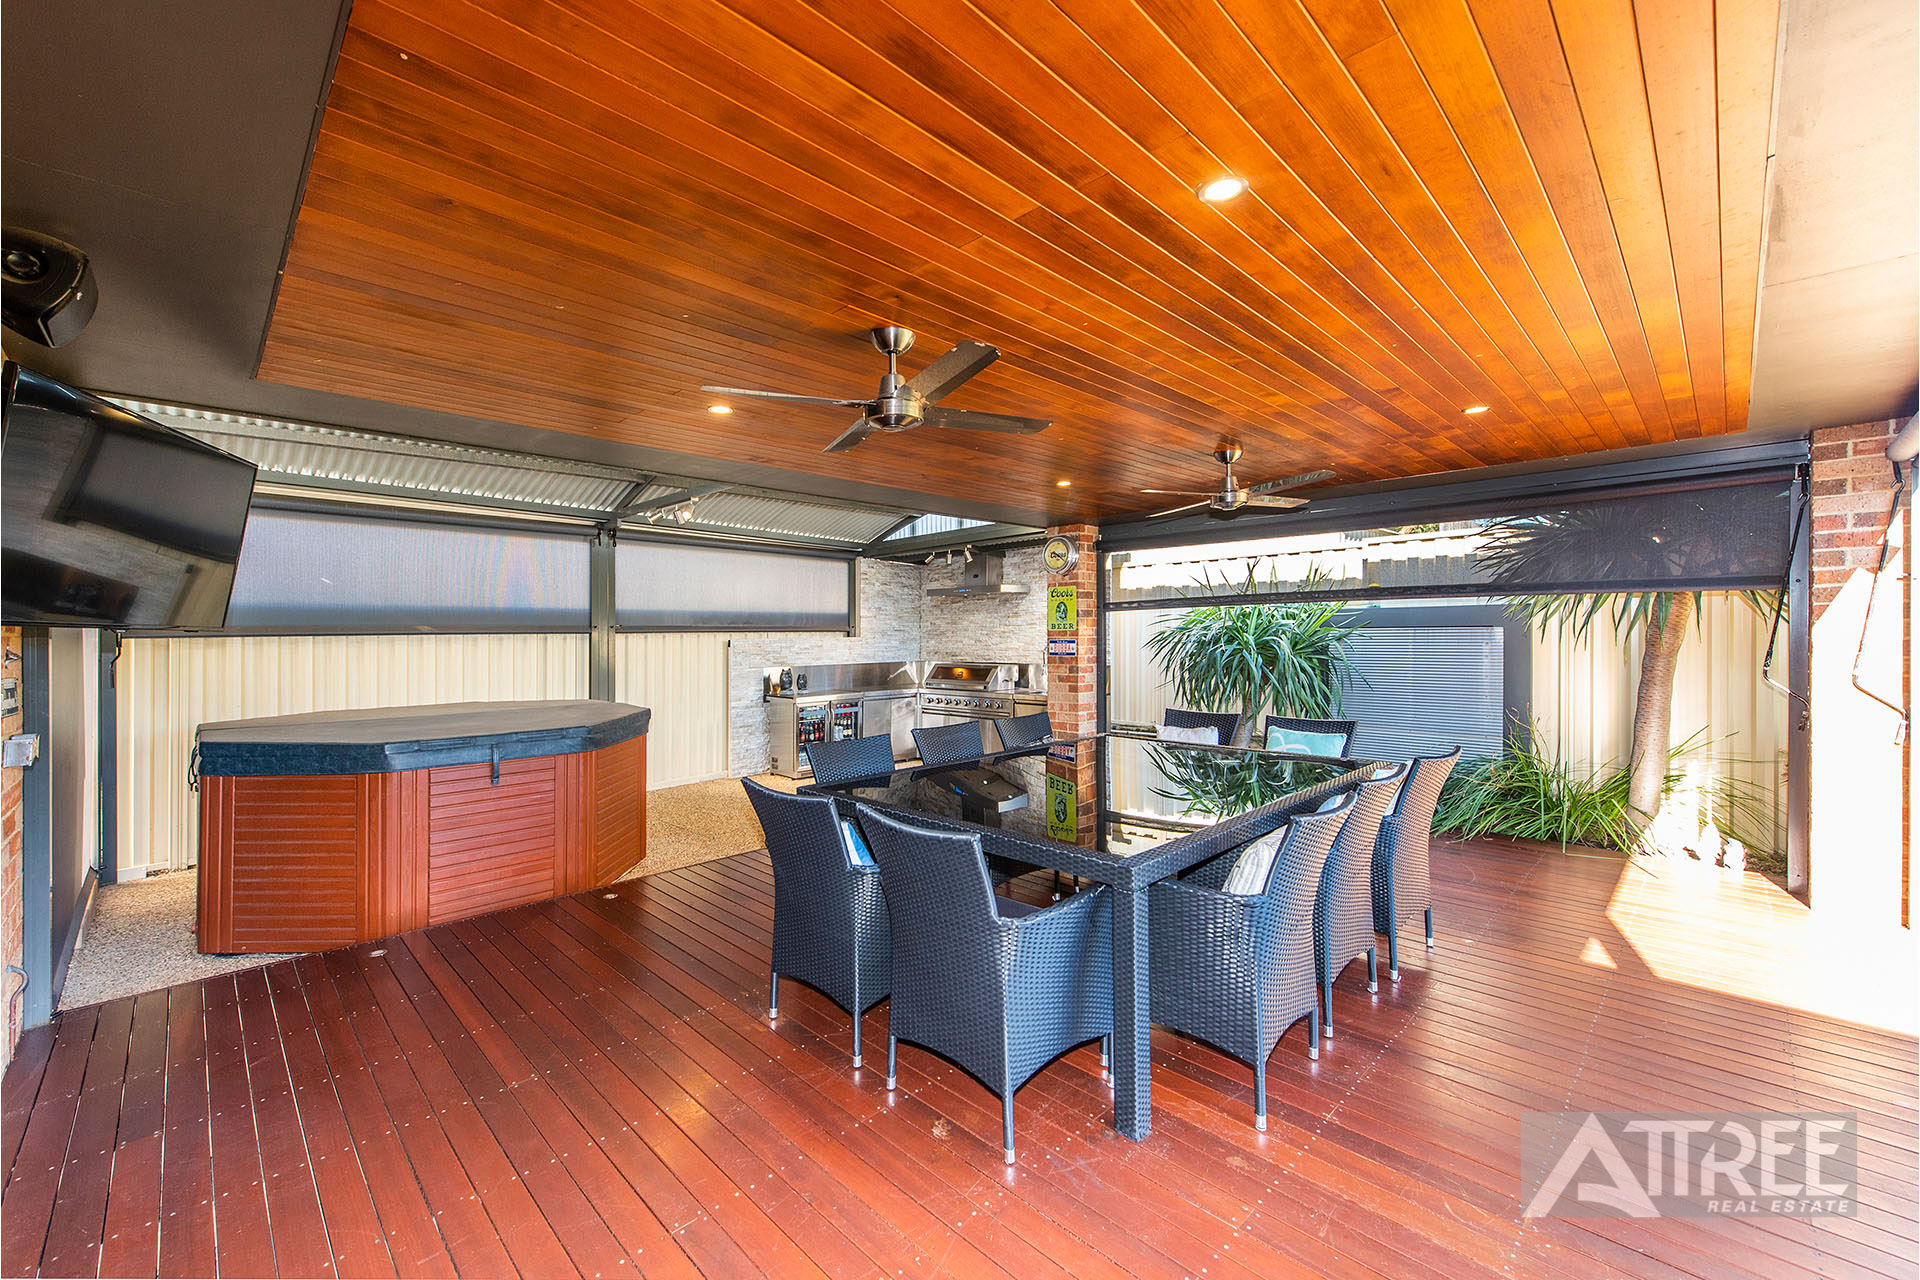 Property for sale in SOUTHERN RIVER, 3 Dalyup Road : Attree Real Estate